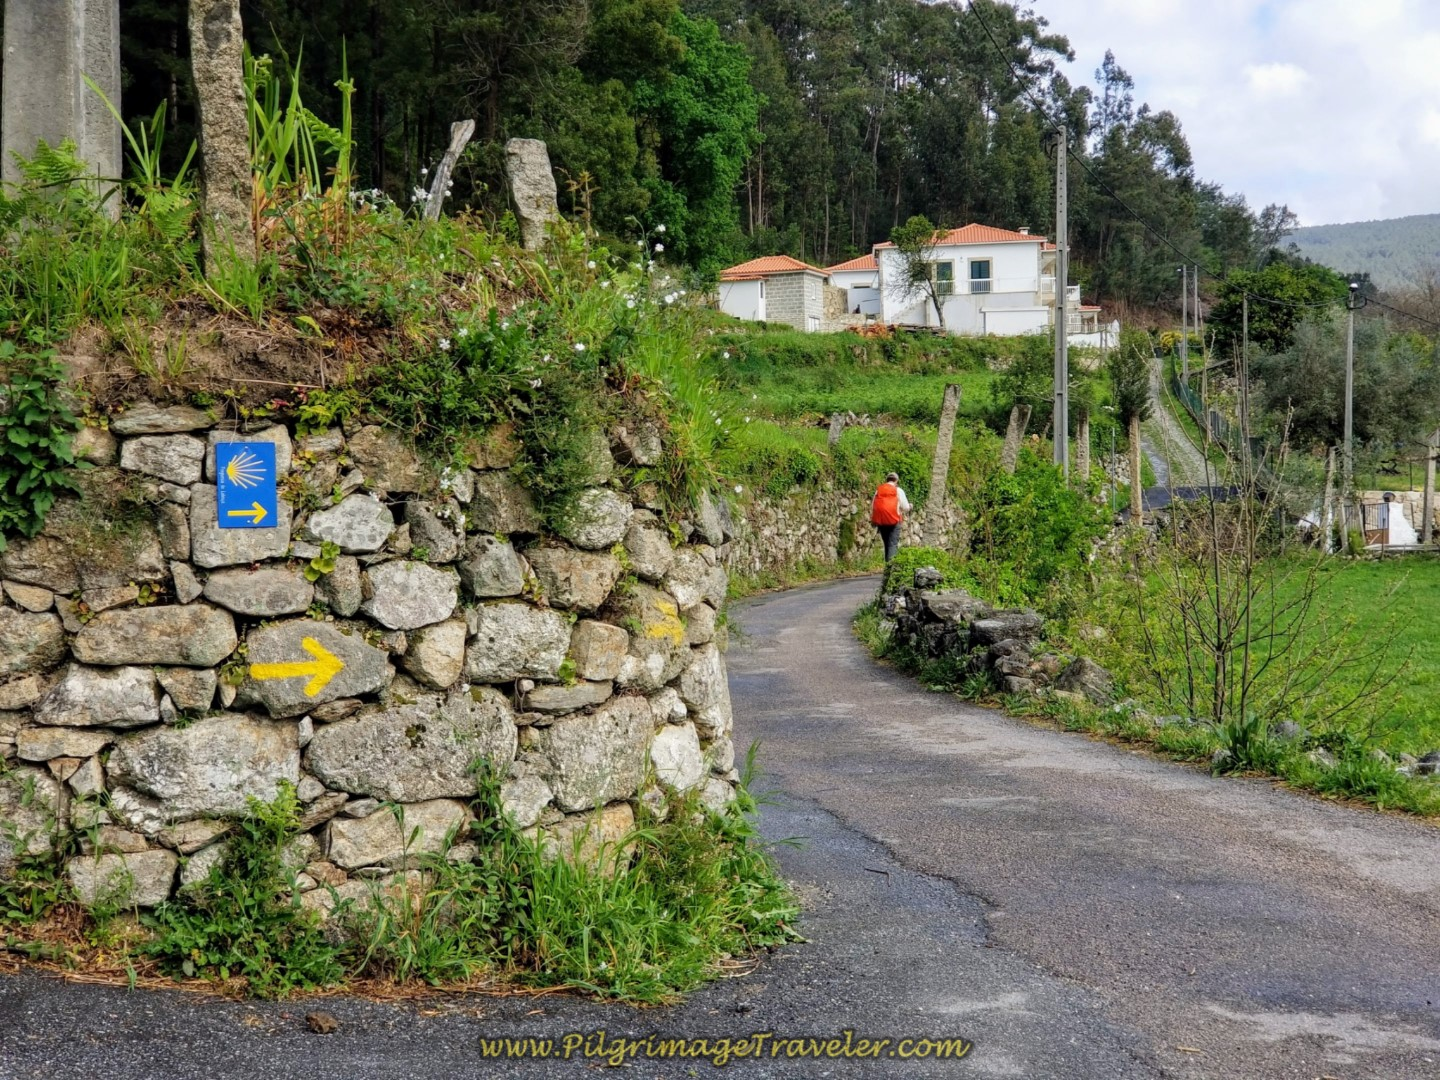 Onward Past the Albergue on day eighteen on the Central Route of the Portuguese Camino